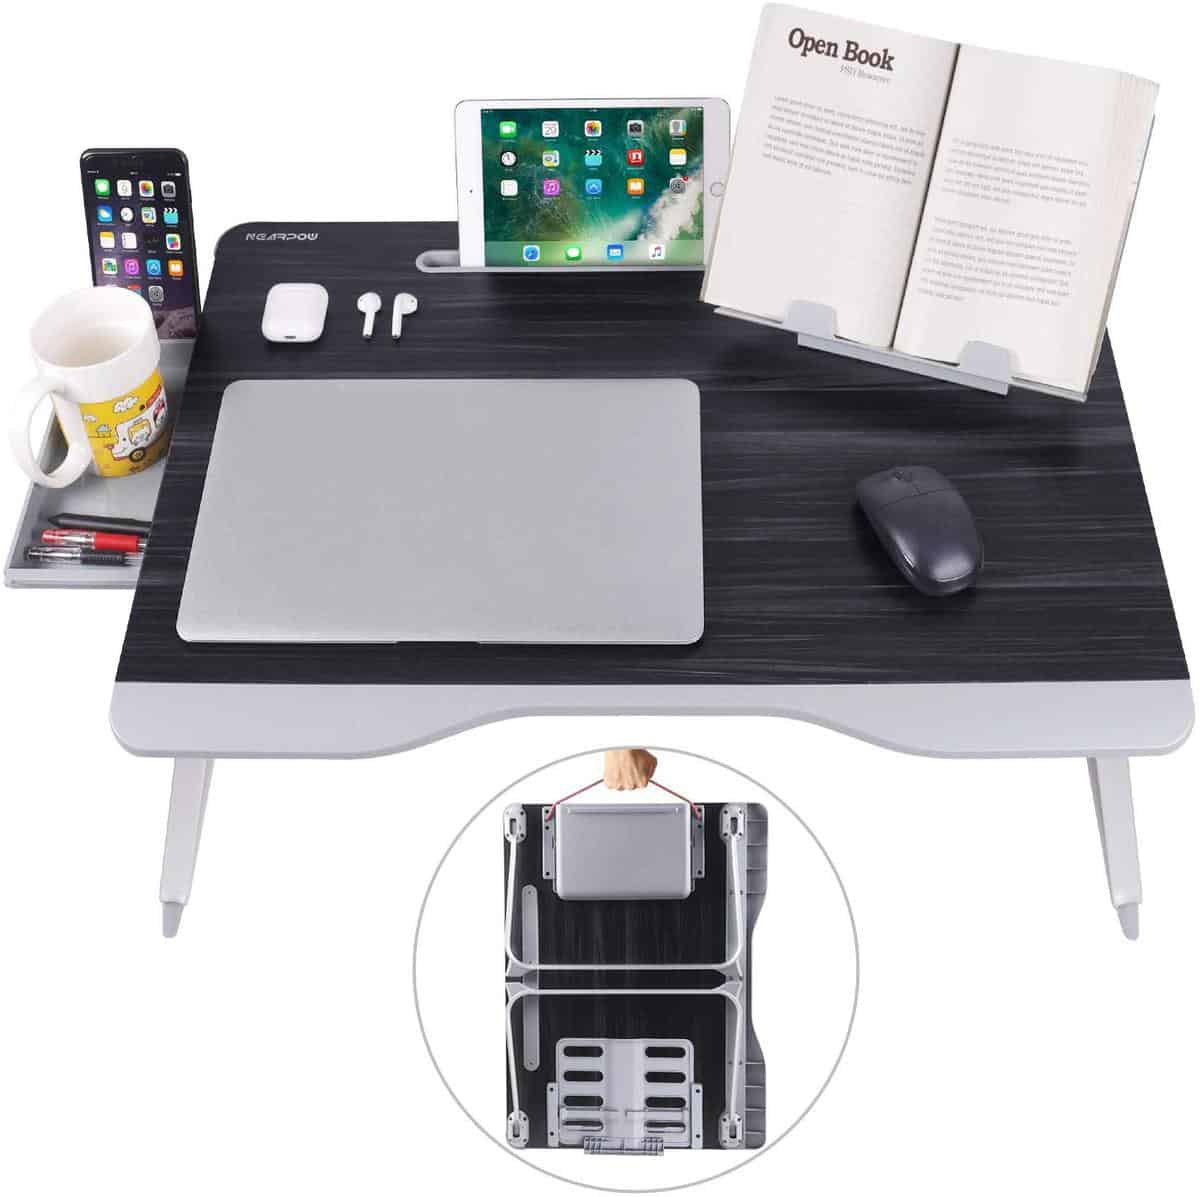 Best Laptop Stand for Bed